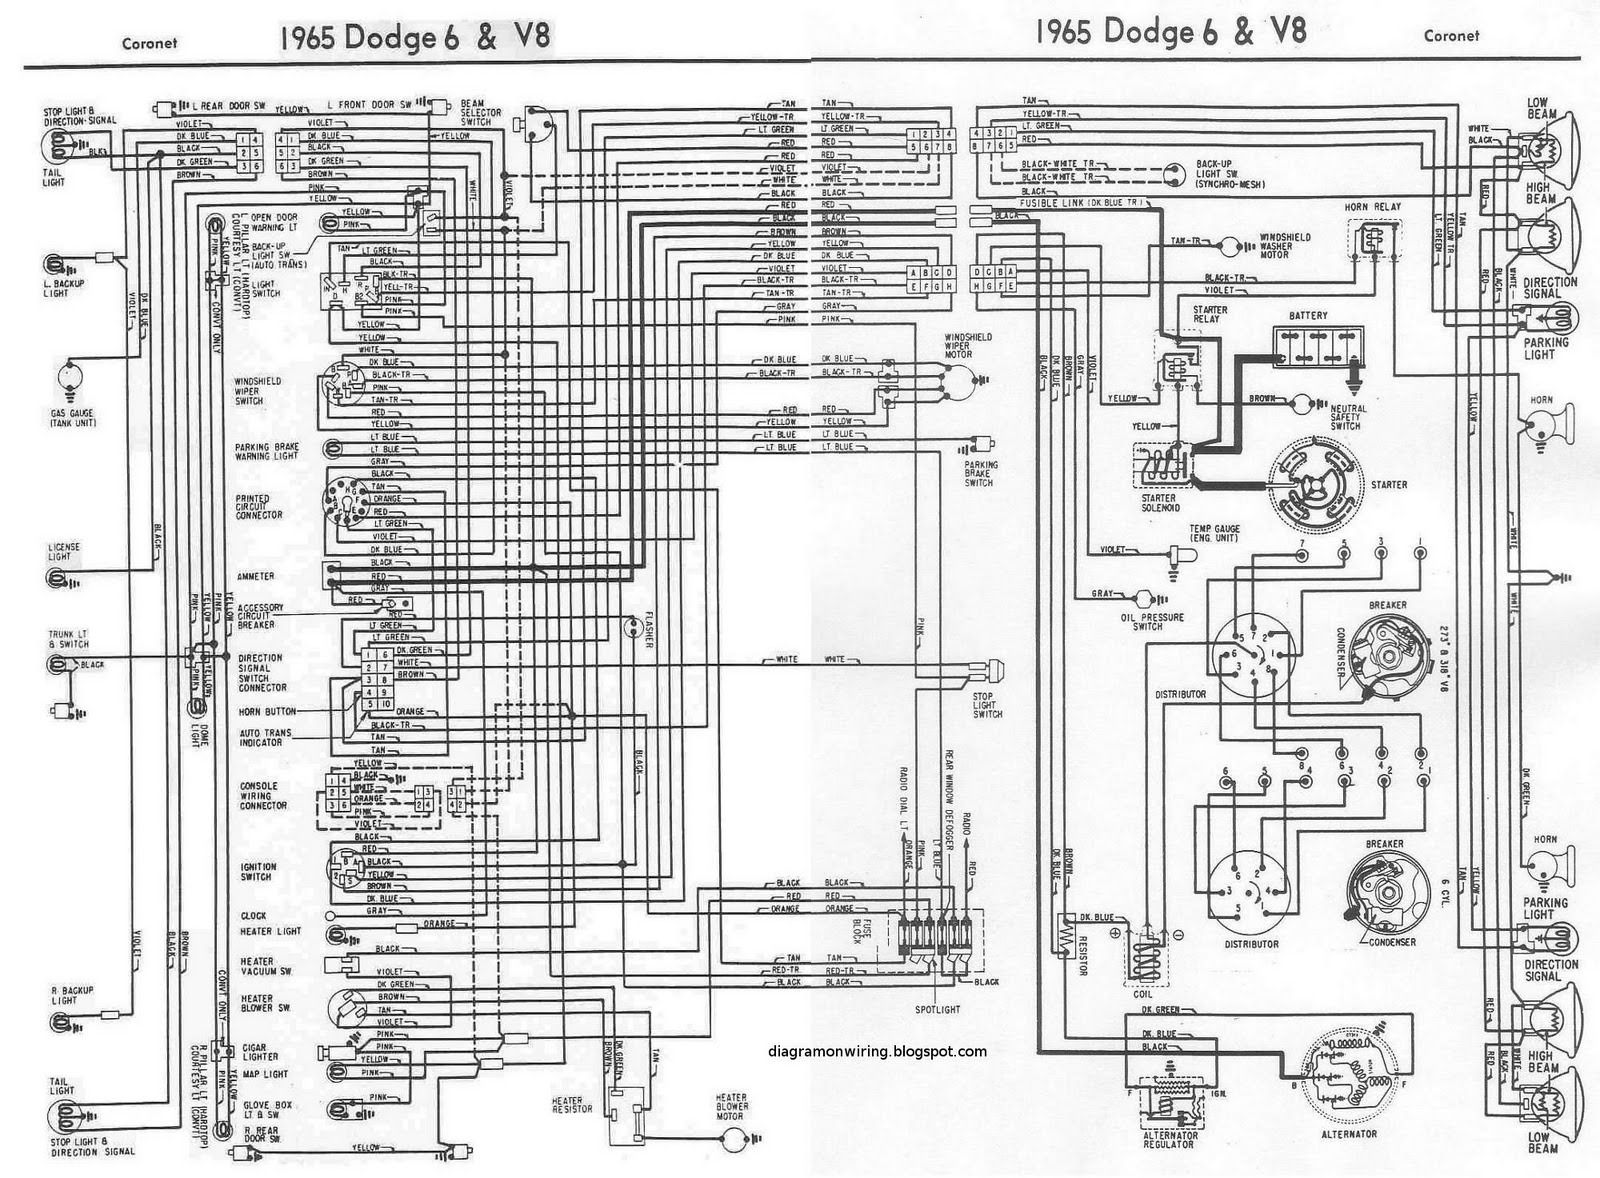 and charger 1971 complete wiring diagram all about wiring diagrams 69 gtx wiring diagram wiring diagram data and charger 1971 complete wiring diagram all about wiring diagrams